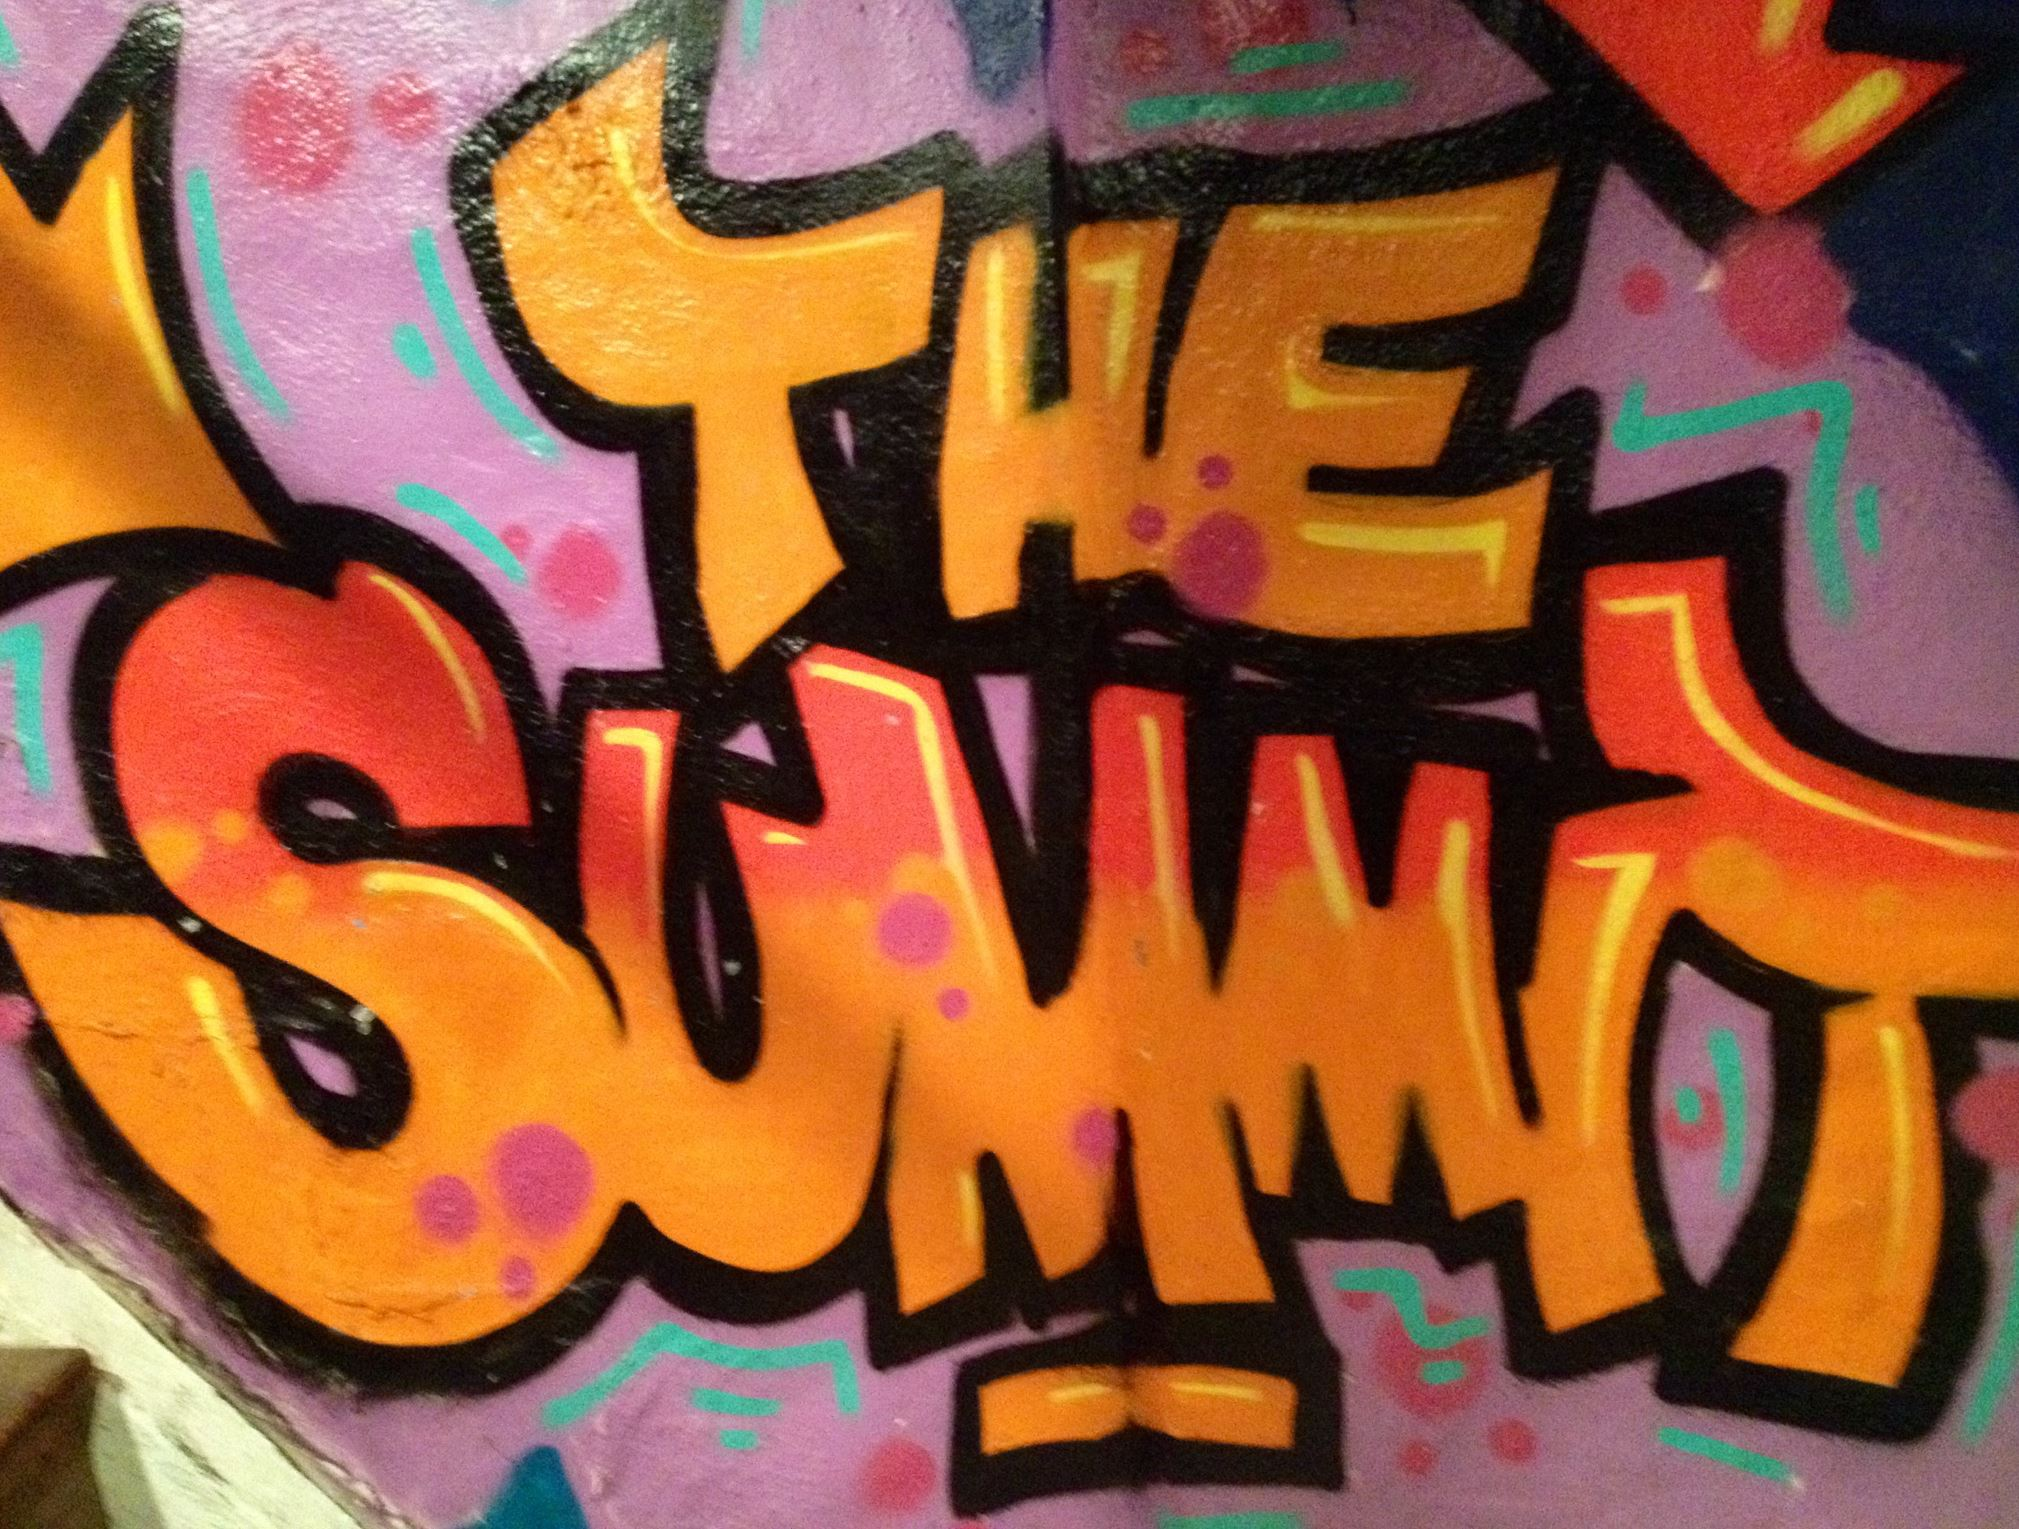 munch0507 A look at the colorful graffiti in the downstairs hallways of The Summit on Shiloh Street in Mt. Washington.